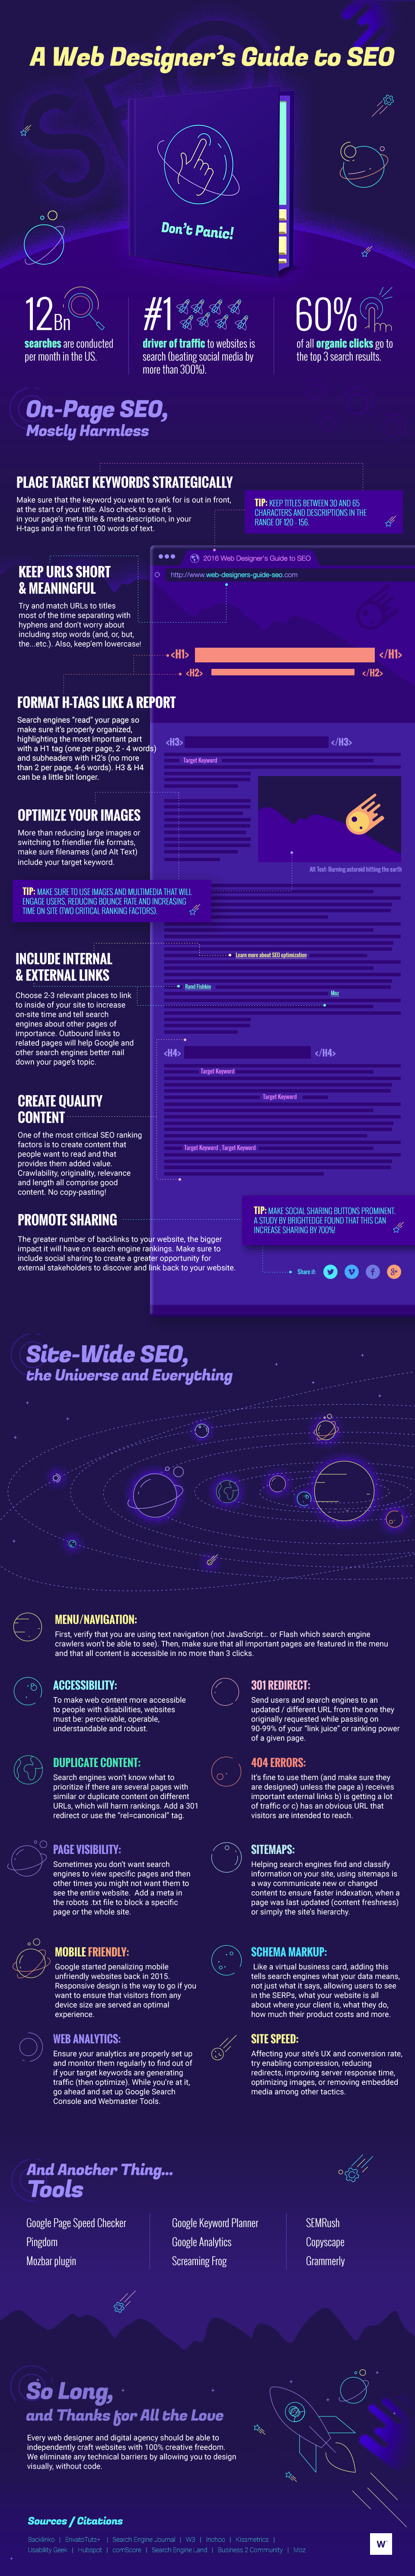 A Web Designer's Guide to SEO Infographic